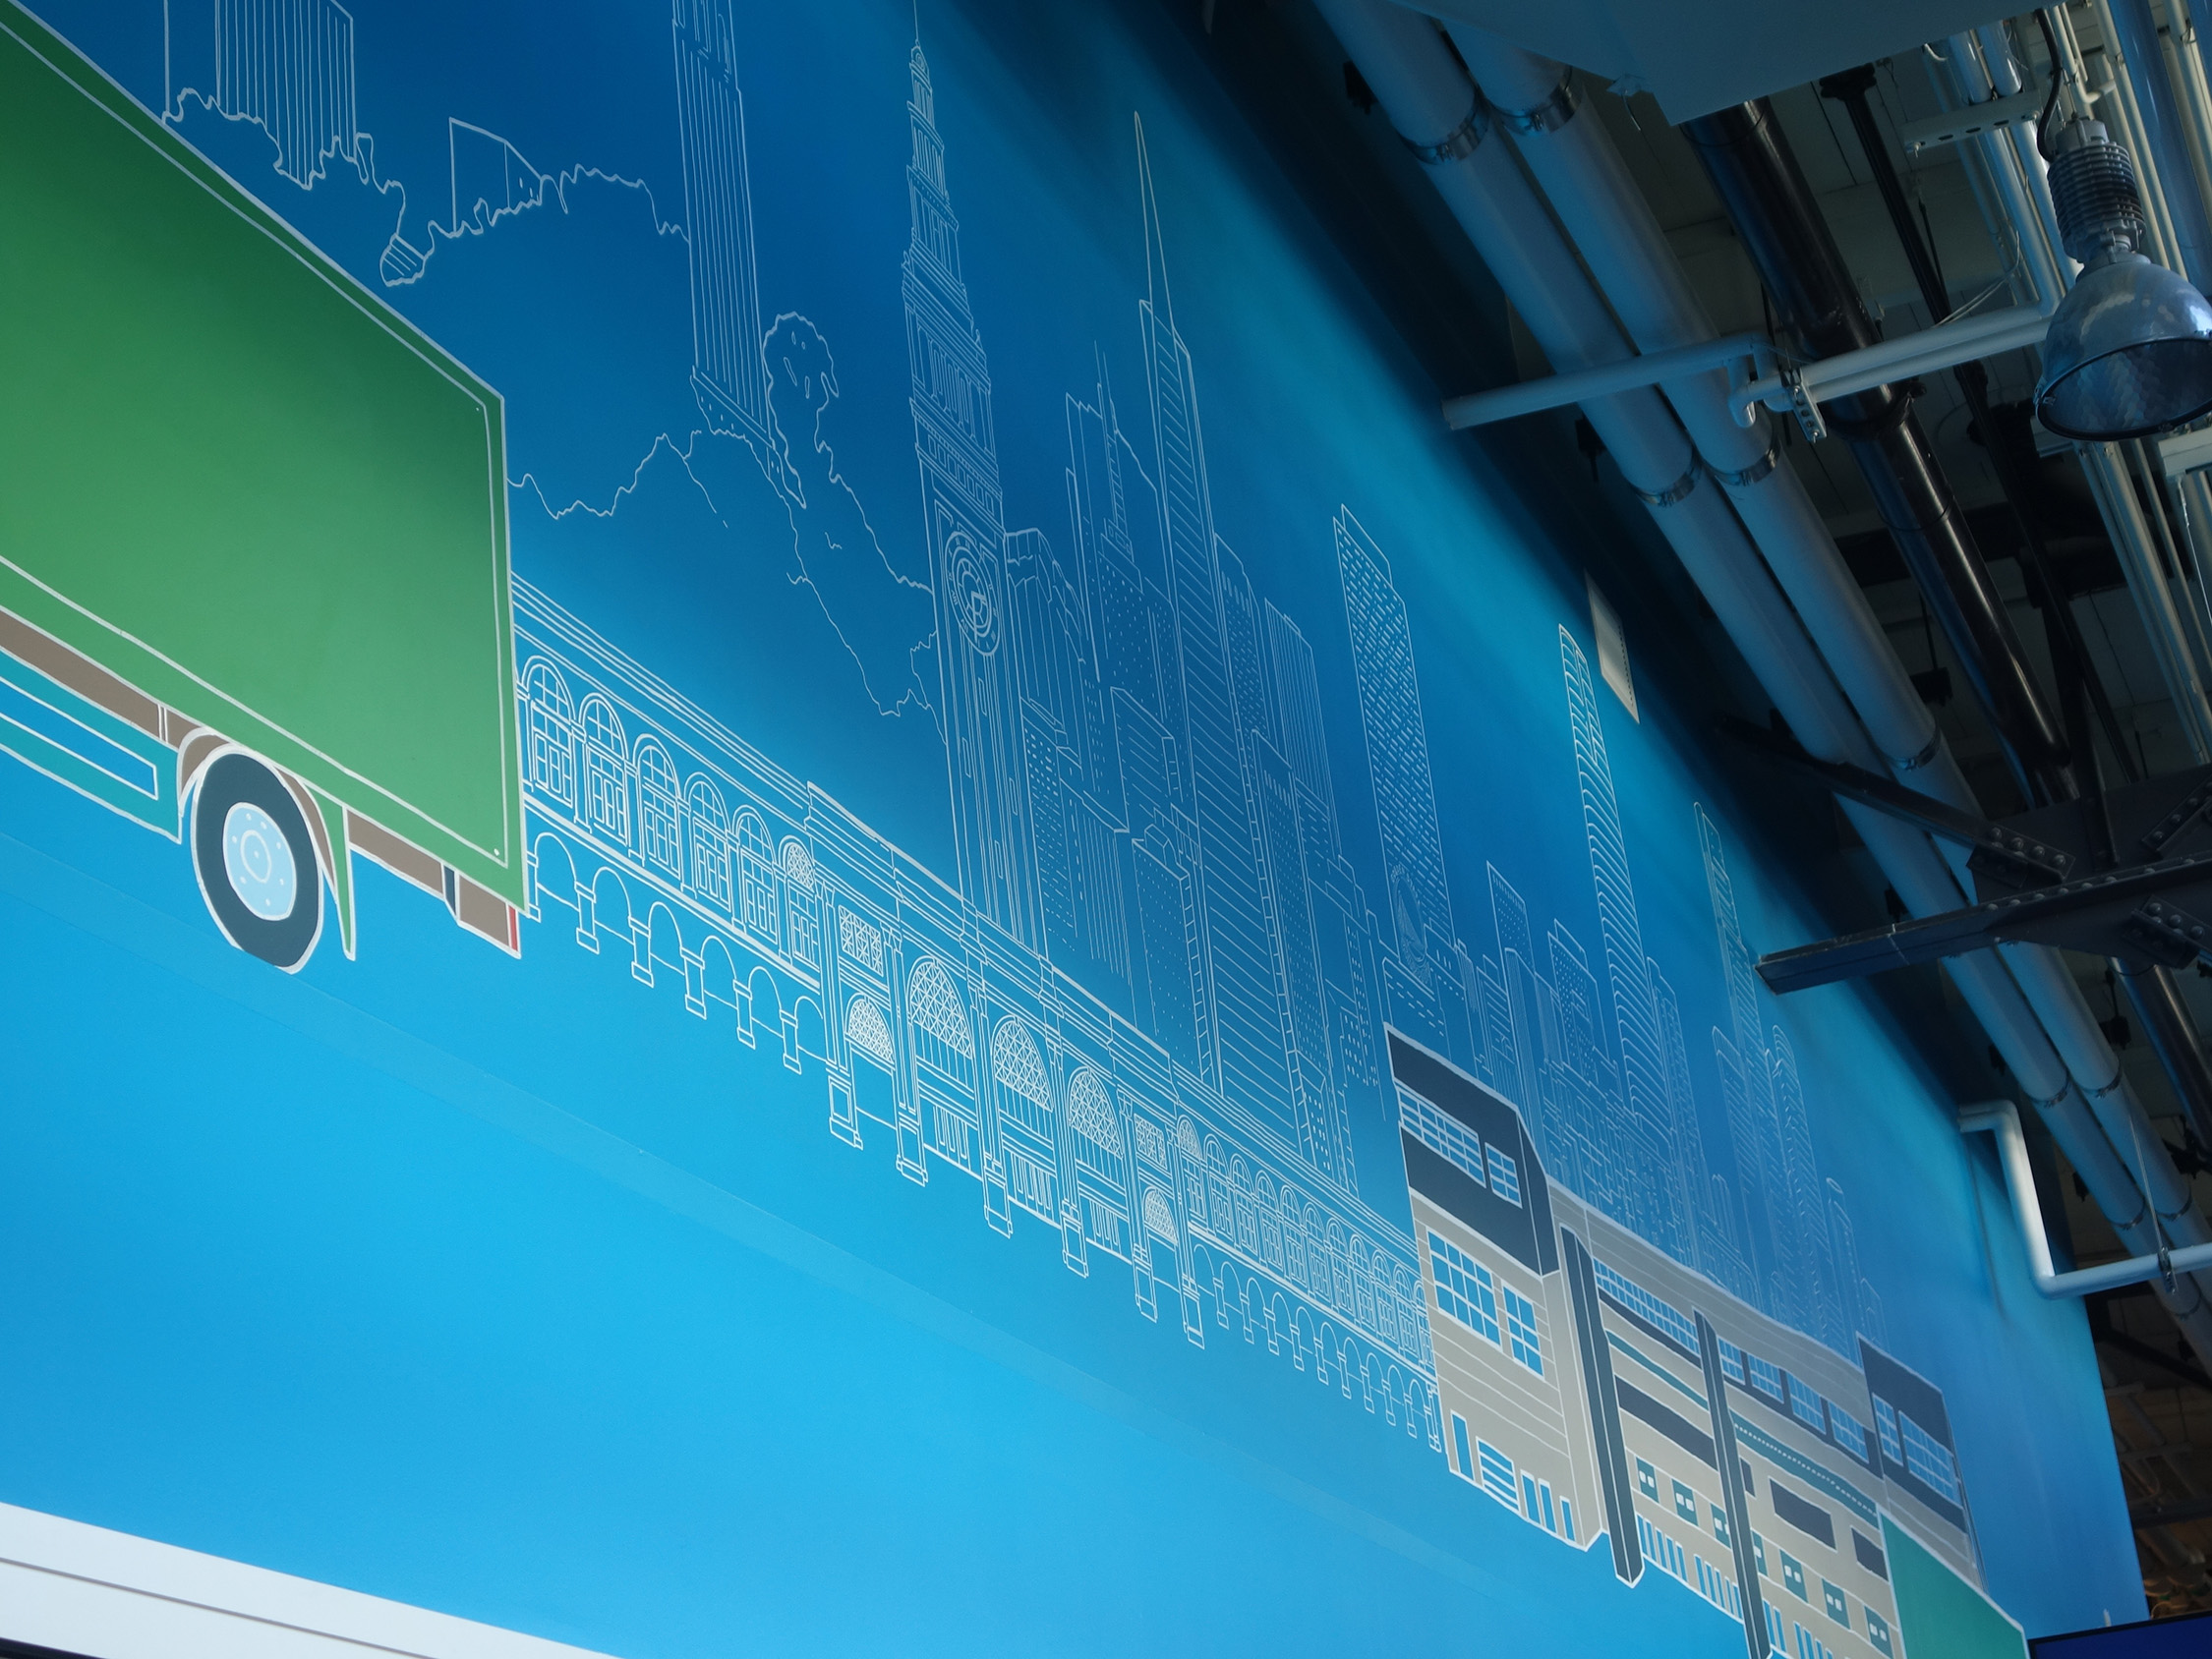 Office-commercial-mural-san-francisco-prologis-wall-and-wall-mural-company_002.jpeg